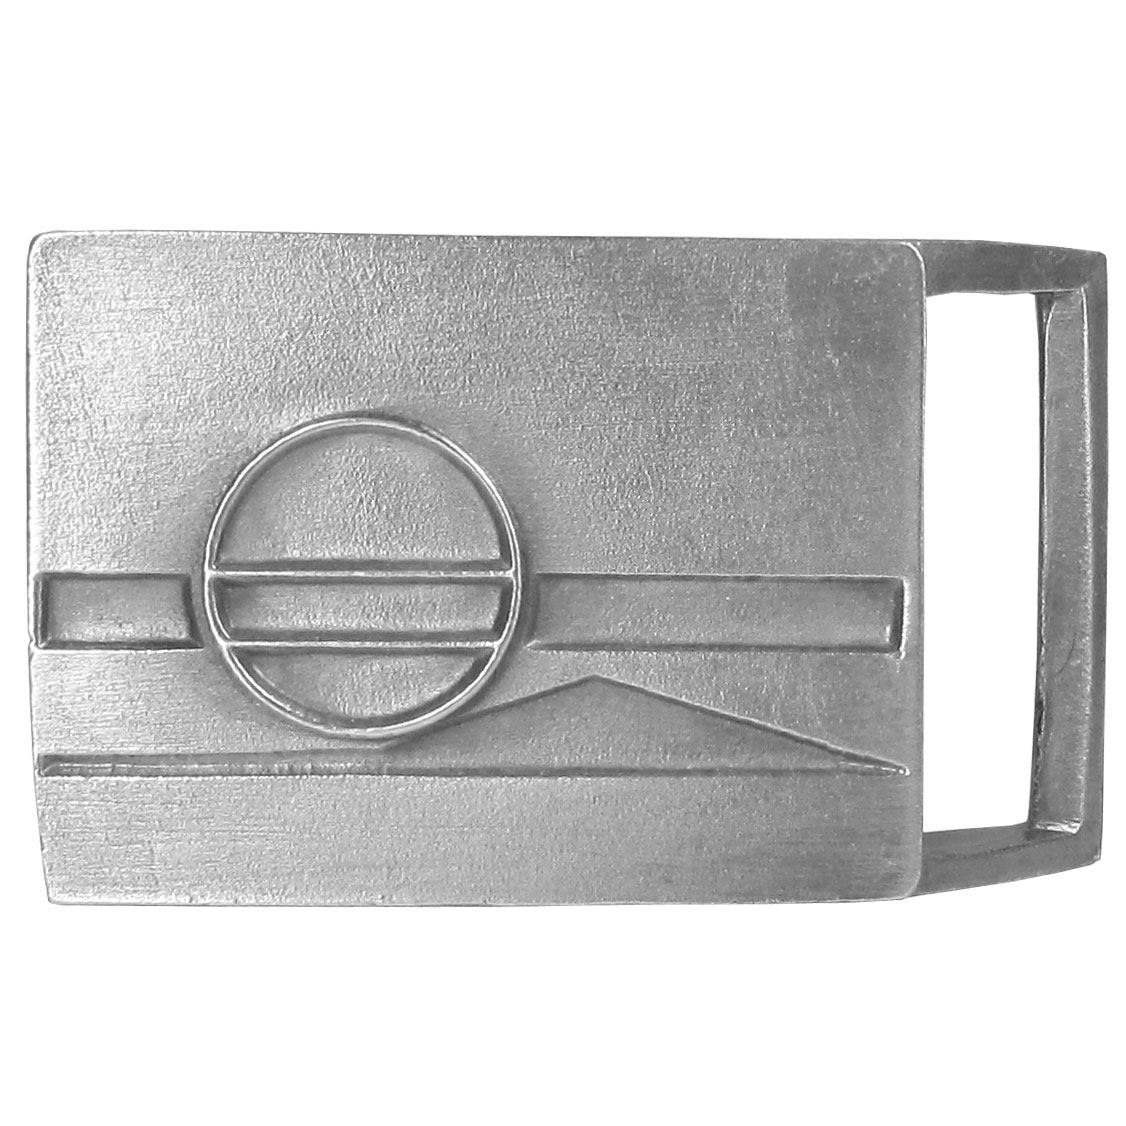 Southwest Antiqued Belt Buckle - Finely sculpted and intricately designed belt buckle. Our unique designs often become collector's items.